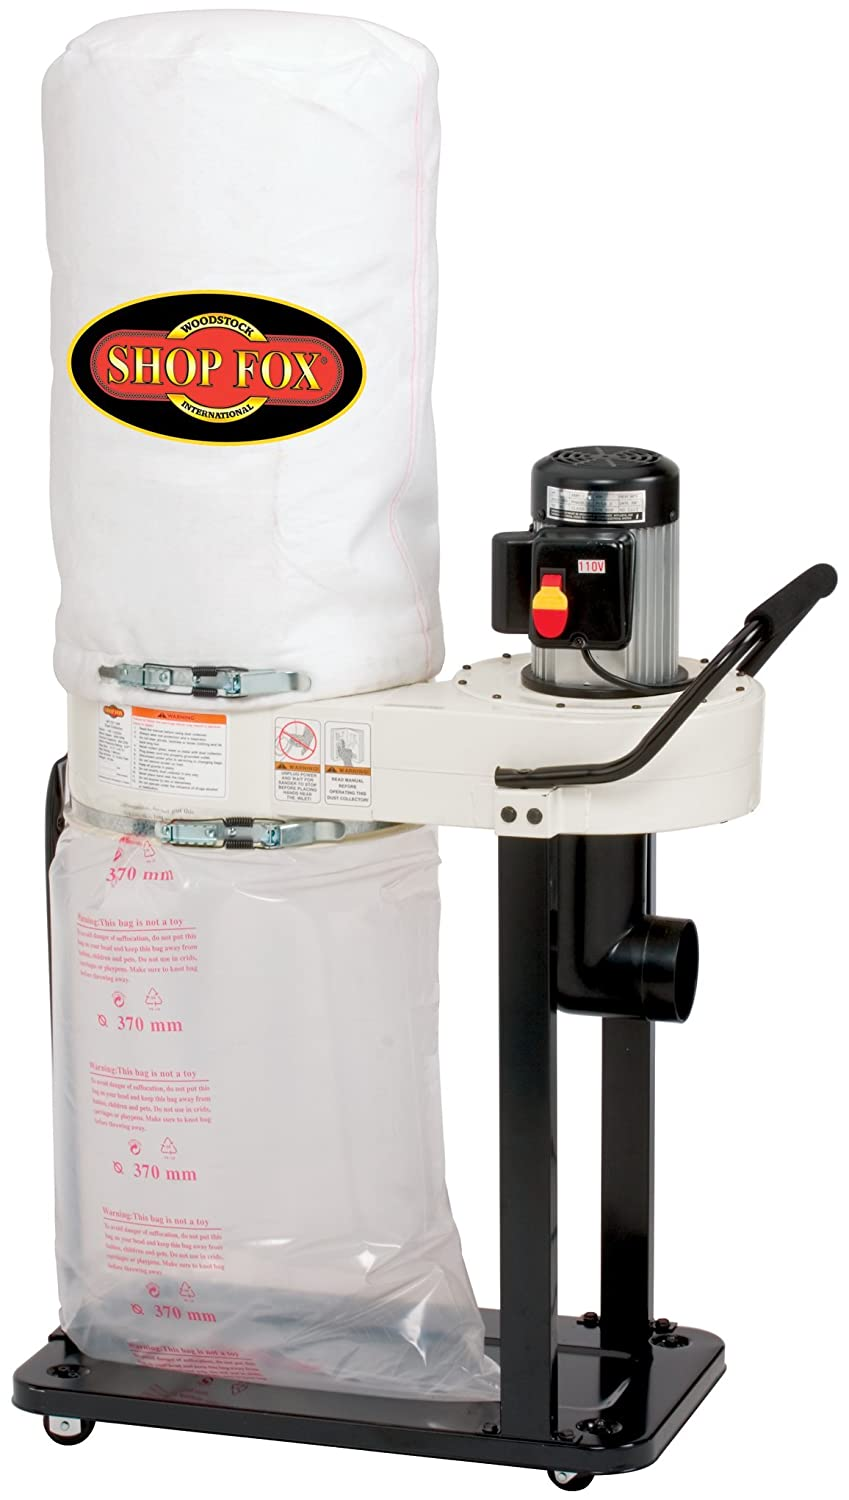 Shop Fox W1727 1 Hp Dust Collector Mdc300120151 Brushless Speed Controllers 1hp And Over